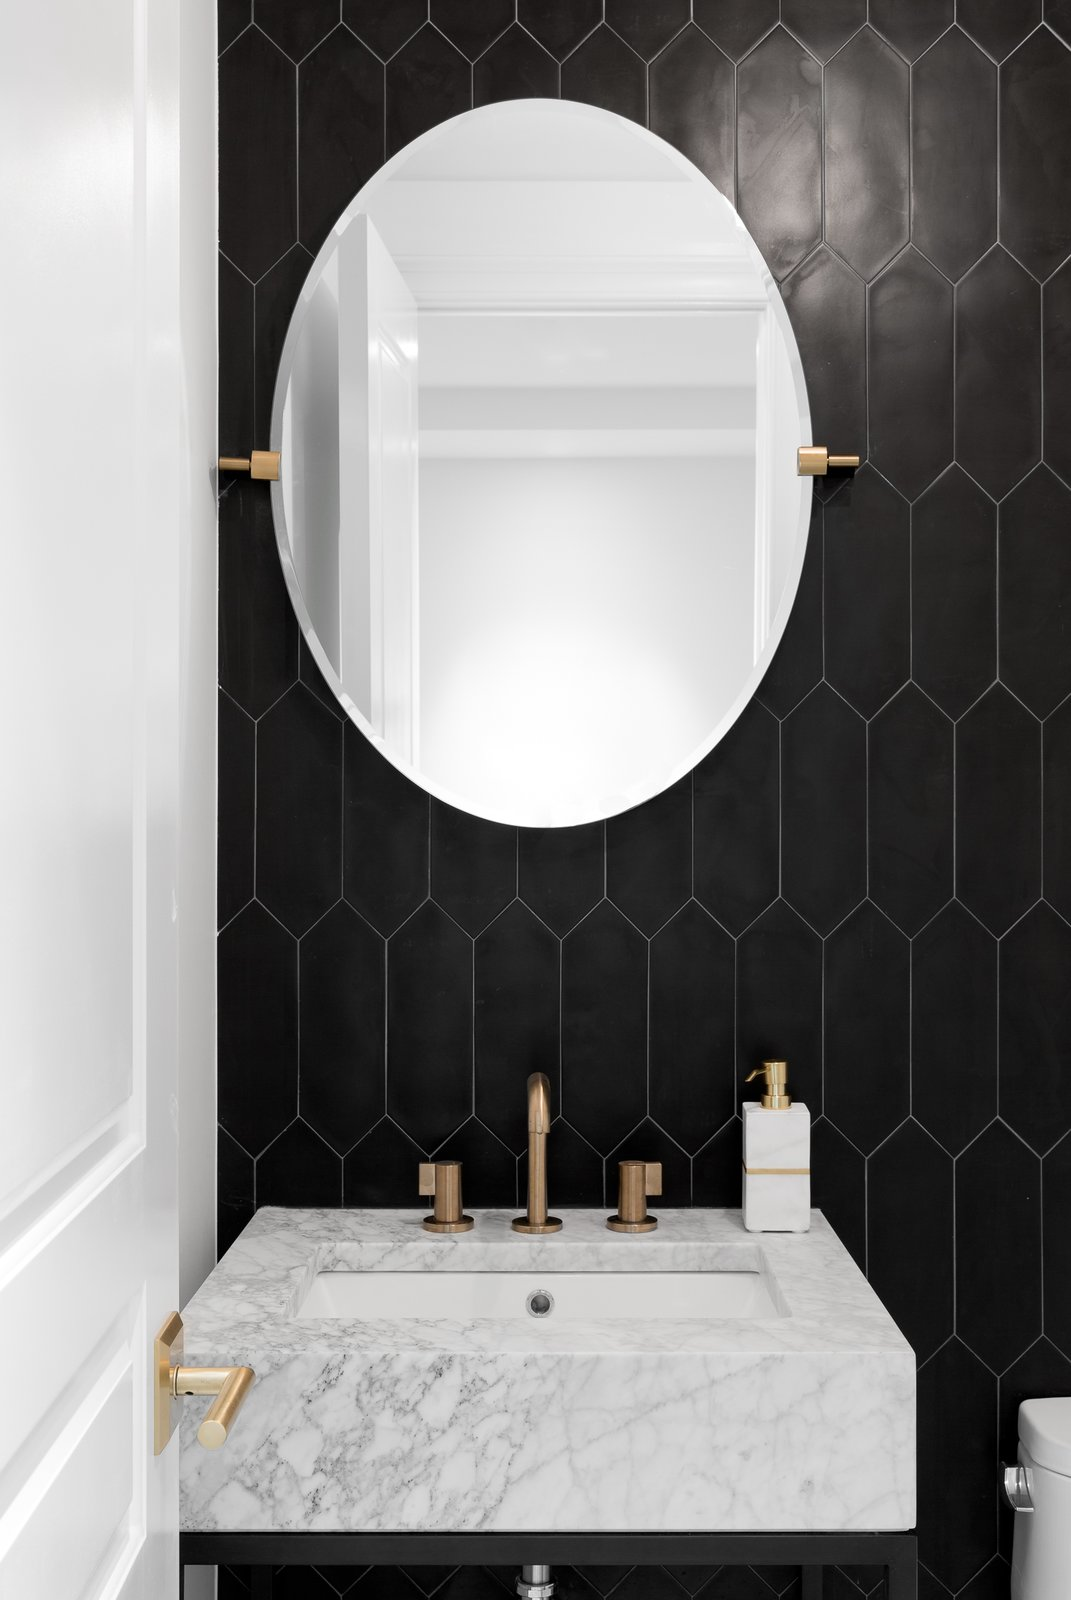 Bath Room, Undermount Sink, Ceramic Tile Wall, and Marble Counter  Boerum Hill Brownstone